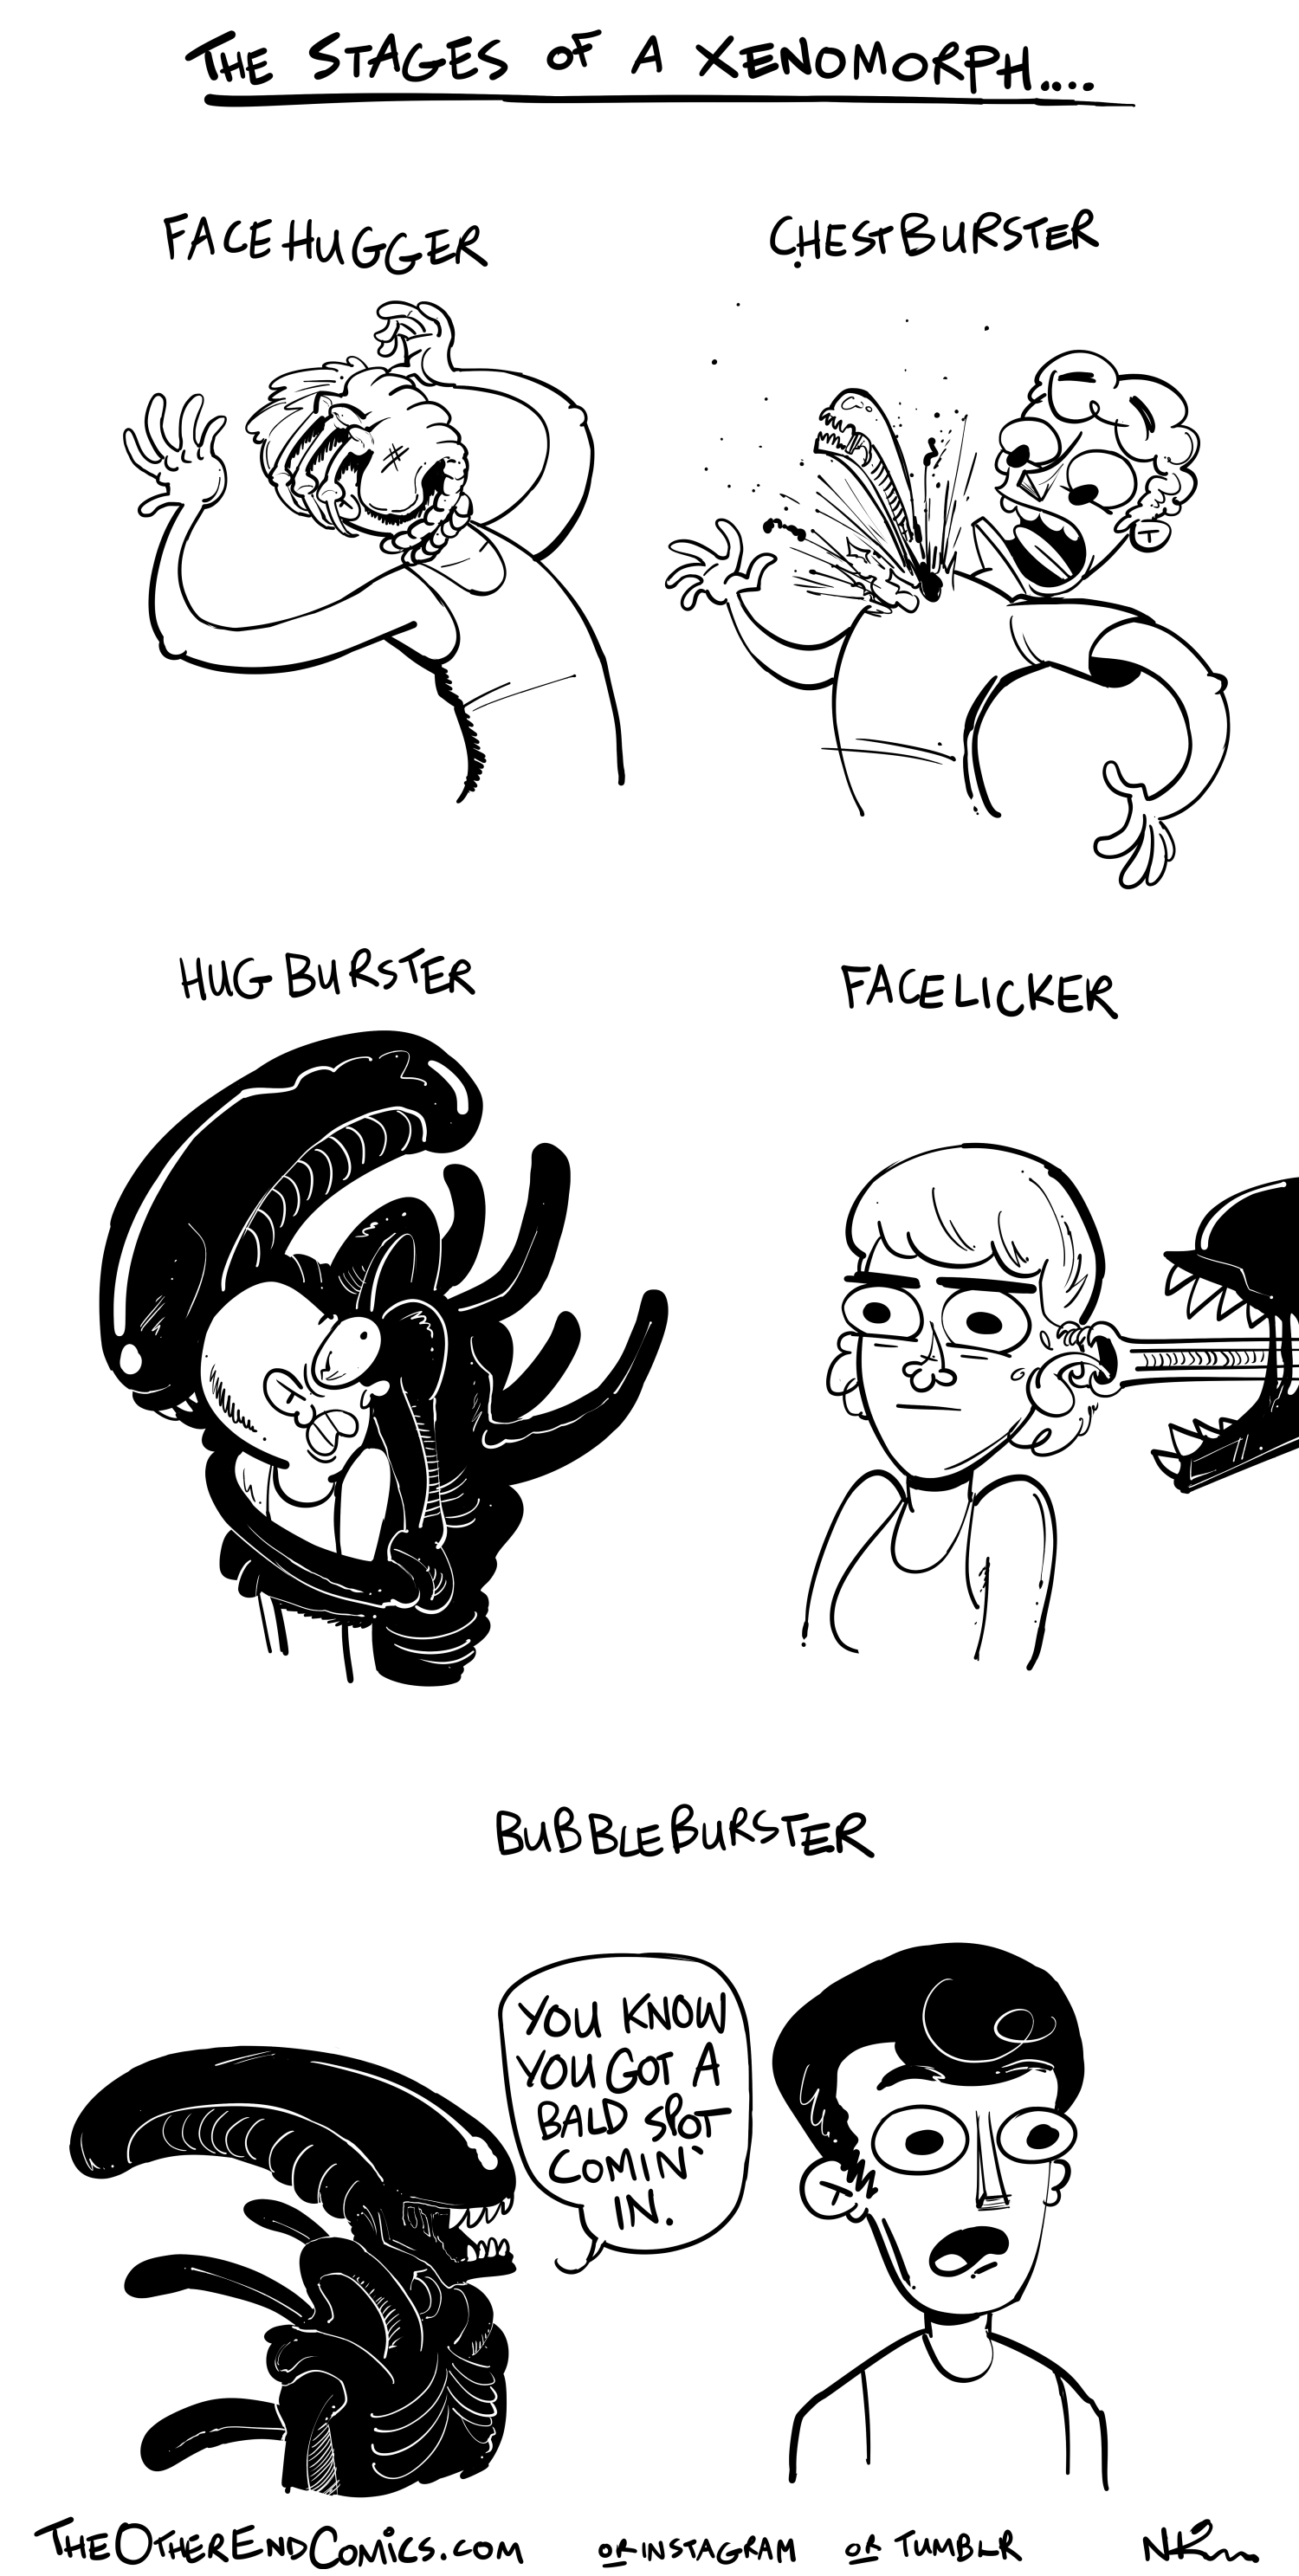 The facelicker comes before the hug buster. This comic is so fake.